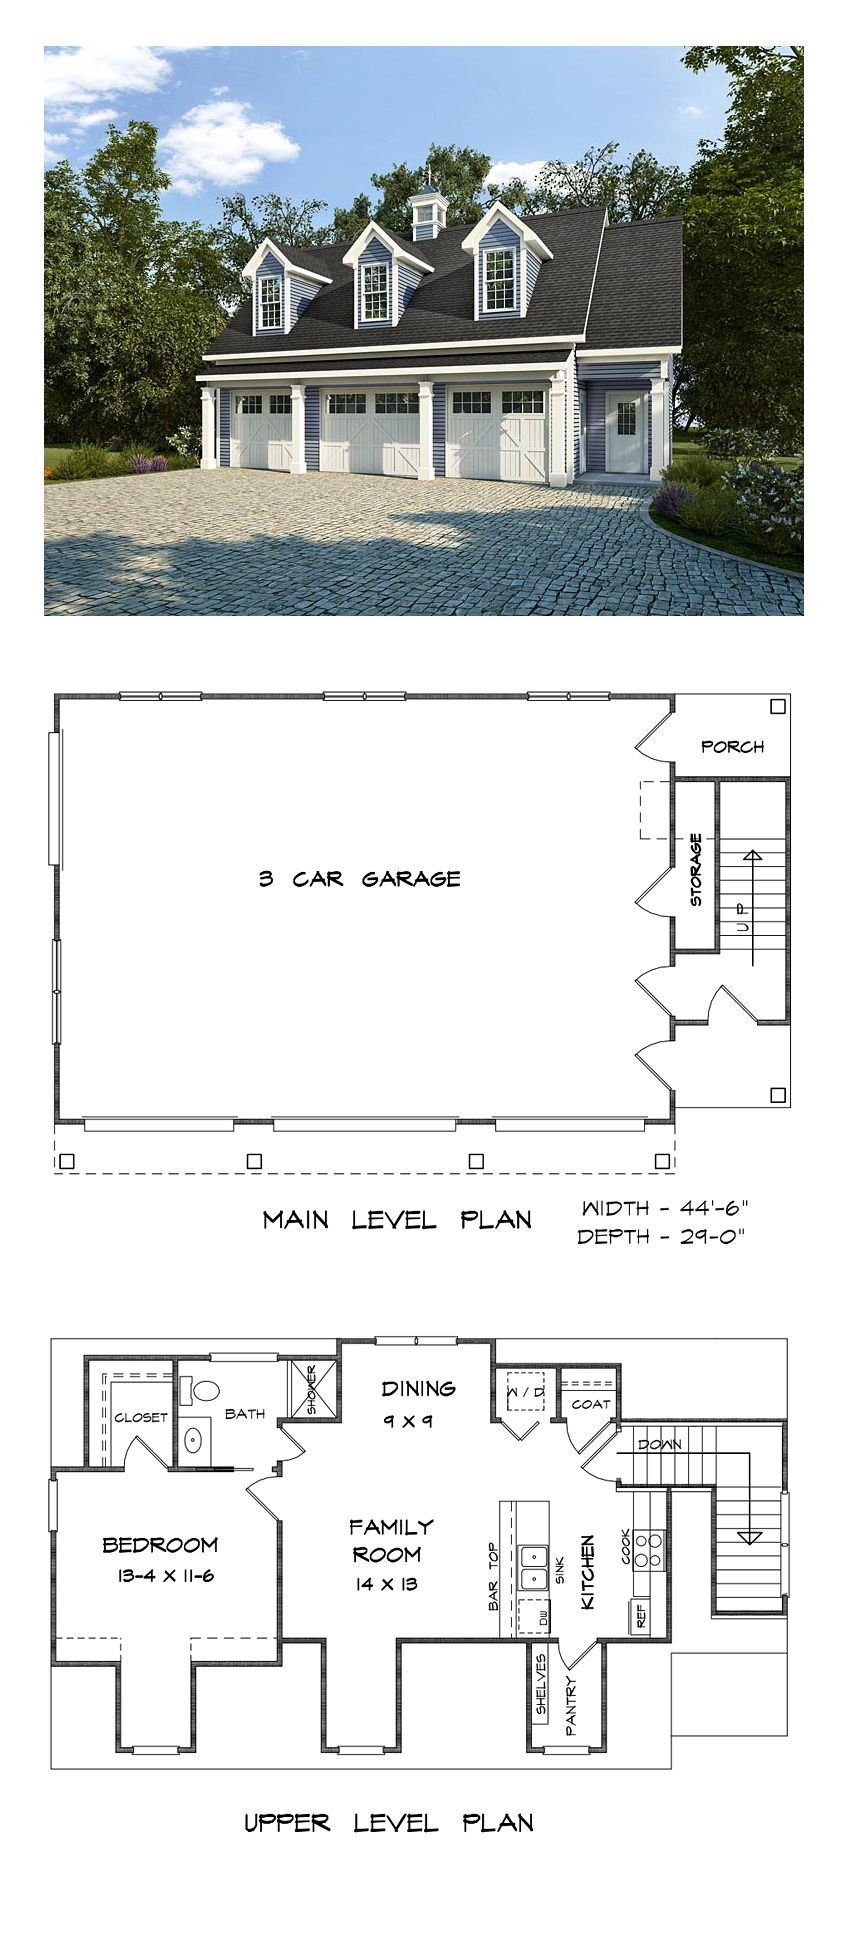 Garage apartment plan 58248 total living area 1812 sq for Garage apartment plans canada